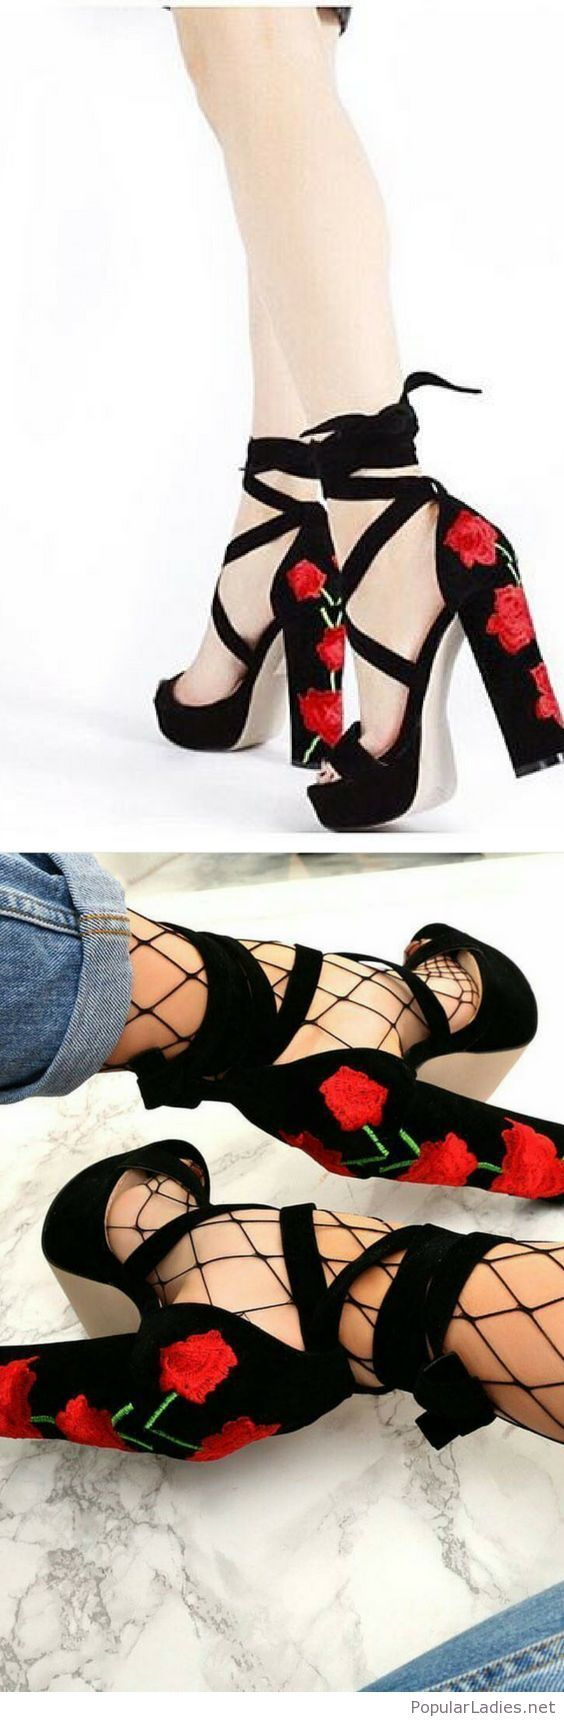 Black vervet sandals with roses and jeans